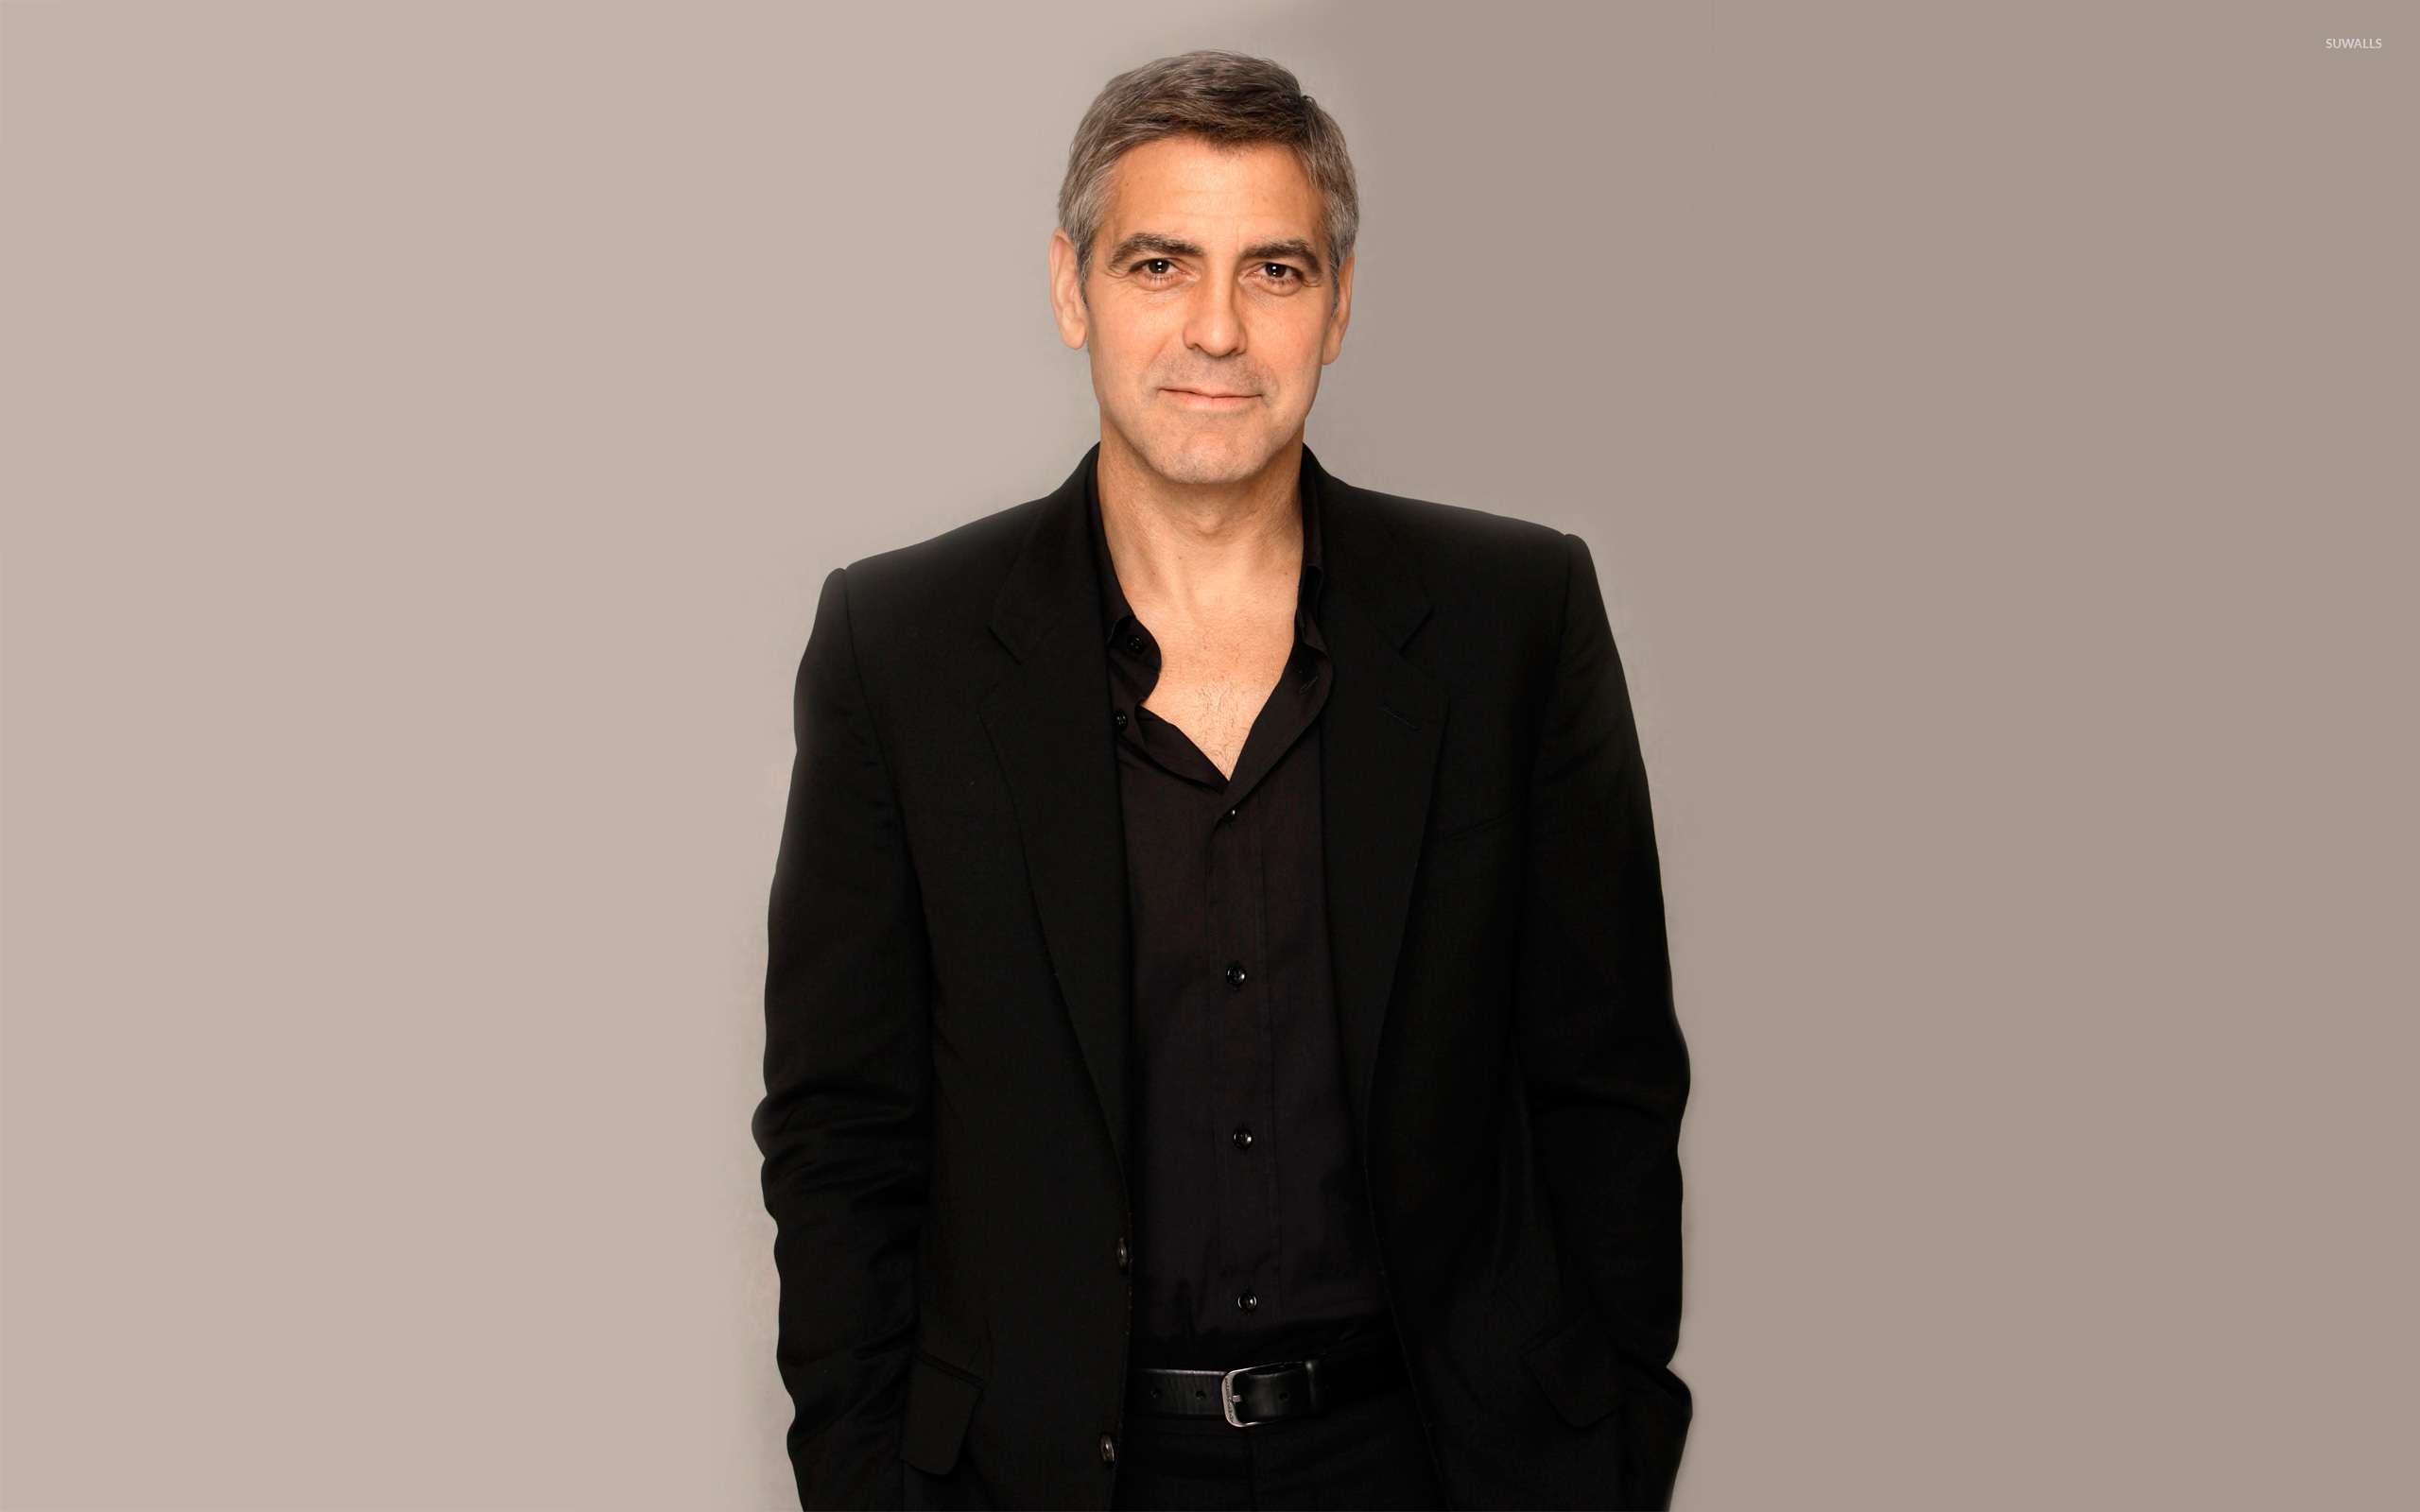 George Clooney [2] wallpaper   Male celebrity wallpapers   7335 2560x1600